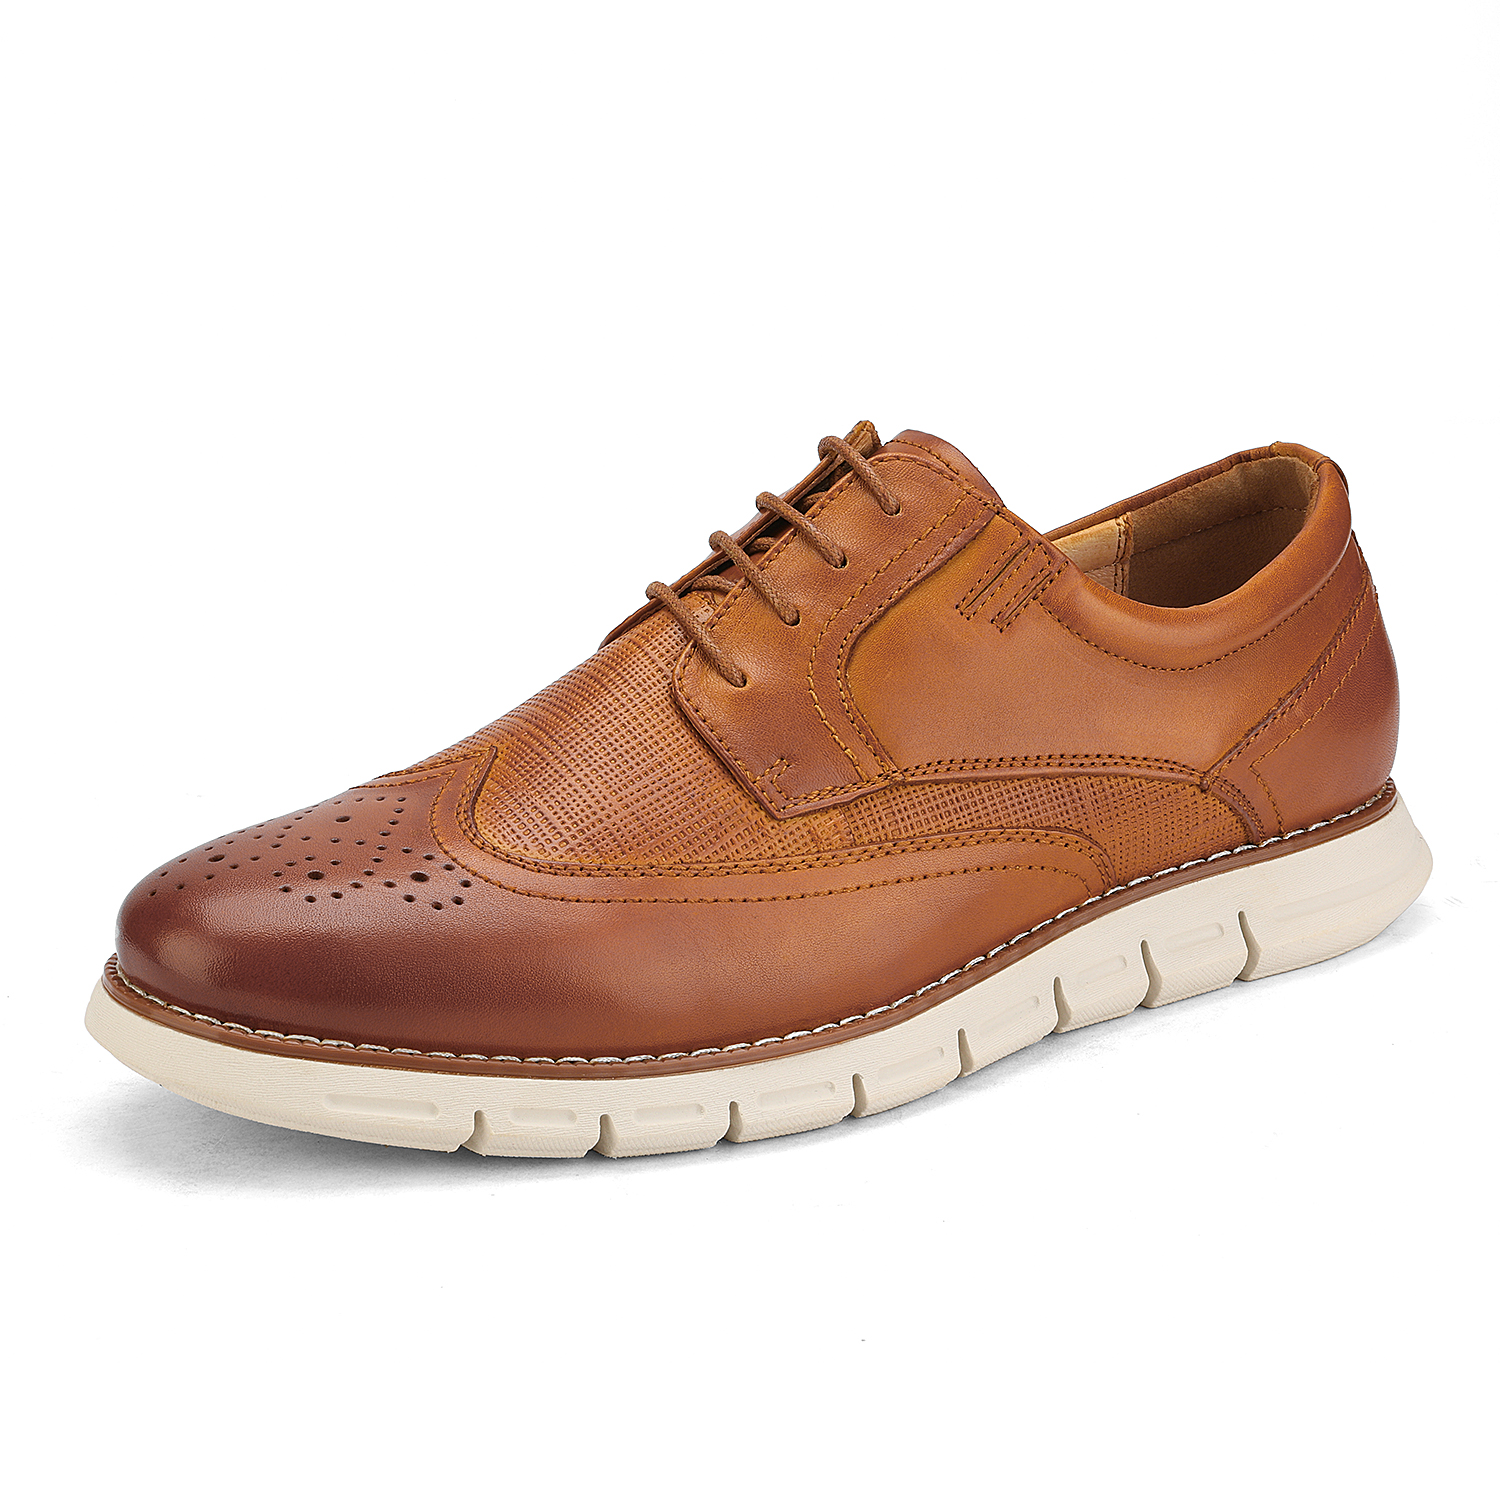 Men-s-Genuine-Leather-Casual-Formal-Sneakers-Lace-up-Business-Oxford-Dress-Shoes thumbnail 22